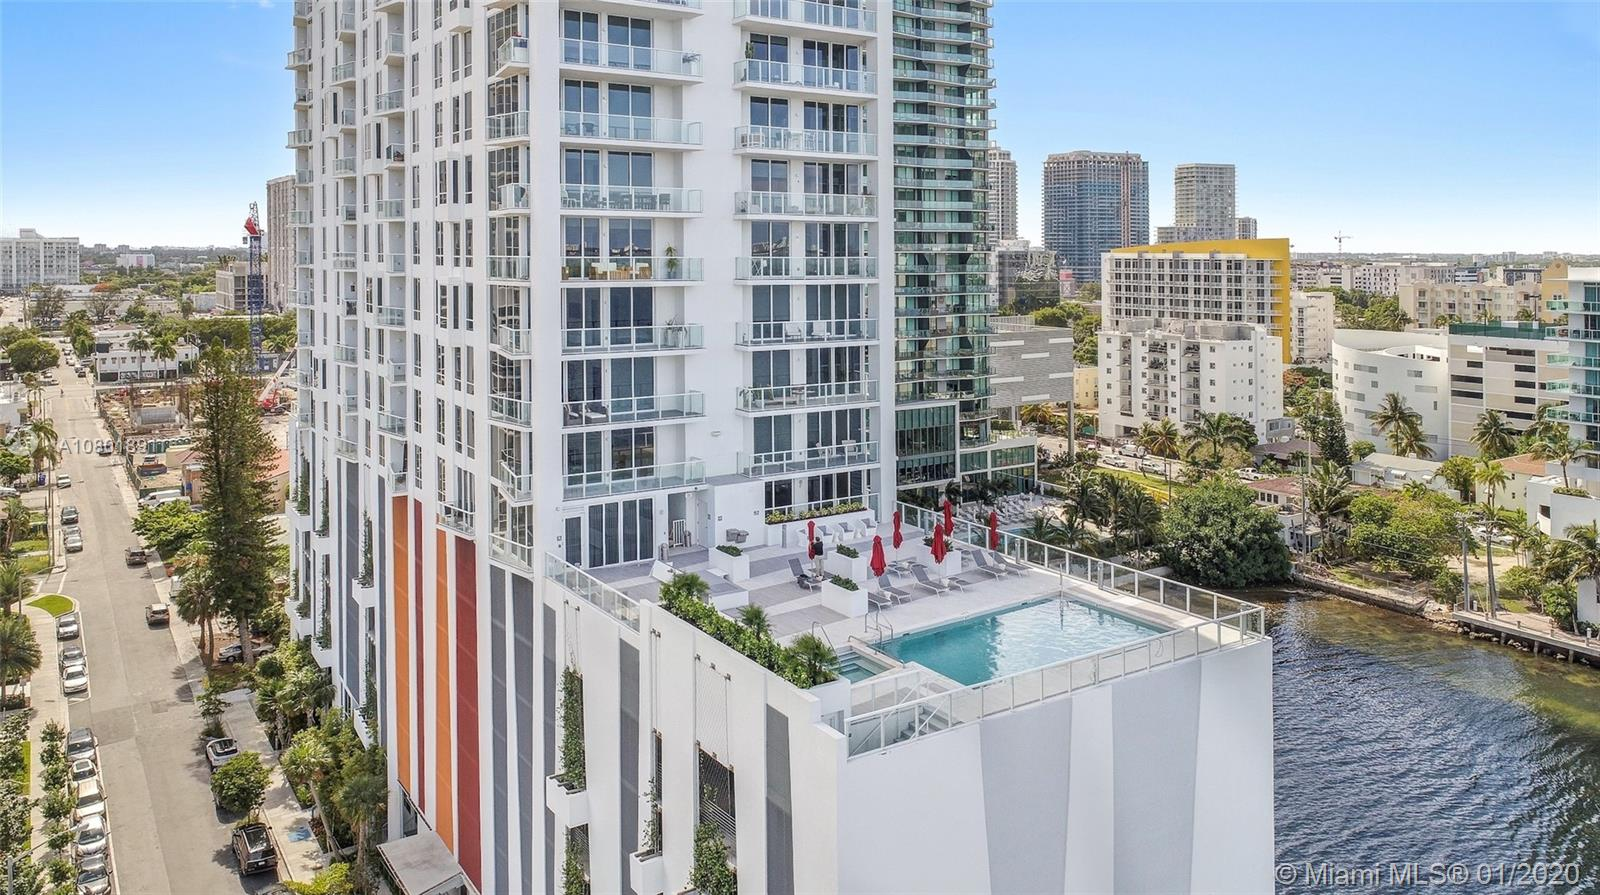 2BED/2BATH WITH GORGEOUS VIEWS OF INTRACOASTAL AND MIAMI BEACH SKYLINE. UNIT IS SOLDINCLUDING MANY CONTEMPORARY EUROPEAN FURNITURES. HIGH END LUXURY FINISHES SUCH AS BOSHAPPLIANCES, ROLLER SHADES, MARBLE BATHROOMS, SPACIOUS CLOSETS, NEW FLOORING, FULL SIZEWASHER/DRYER. BEAUTIFUL BAY AND CITY VIEWS IN A LEED SILVER CERTIFIED BLDG WITH ENERGY EFFICIENTA/C SYSTEM. ENJOY THIS BOUTIQUE STYLE BUILDING WITH POOL, SPA, GYM, CYBER CAFE, THEATRE ANDBUSINESS ROOM. EXCELLENT LOCATION IN BOOMING EDGEWATER RIGHT BY THE INTRACOASTAL BAY WITH ABEAUTIFUL PRIVATE BOARDWALK.LOCATED A FEW MINUTES FROM WYNWOOD, MIDTOWN AND DESIGNDISTRICT FOR SHOPPING AND MANY RESTAURANTS. UNIT IS CURRENTLY RENTED , TENANT CAN STAY AFTERCLOSING OR HE CAN LEAVE WITH A 60-DAYS NOTICE